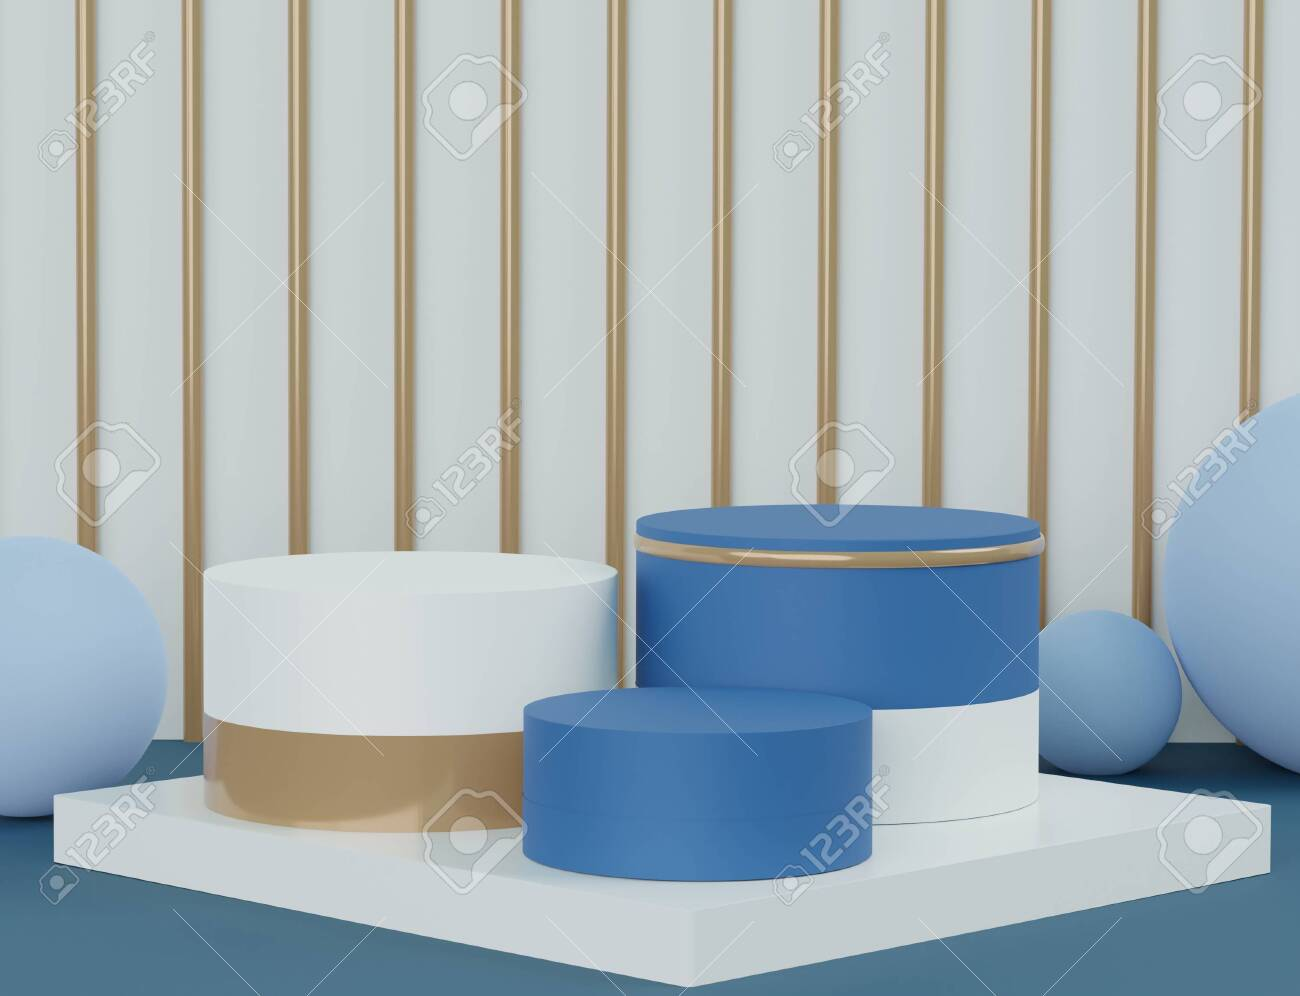 3d abstract minimal geometric forms. Glossy luxury podium for your design. Classic blue color of the year 2020. Fashion show stage,pedestal, shopfront. Empty scene for cosmetic show and mock up. - 140466189